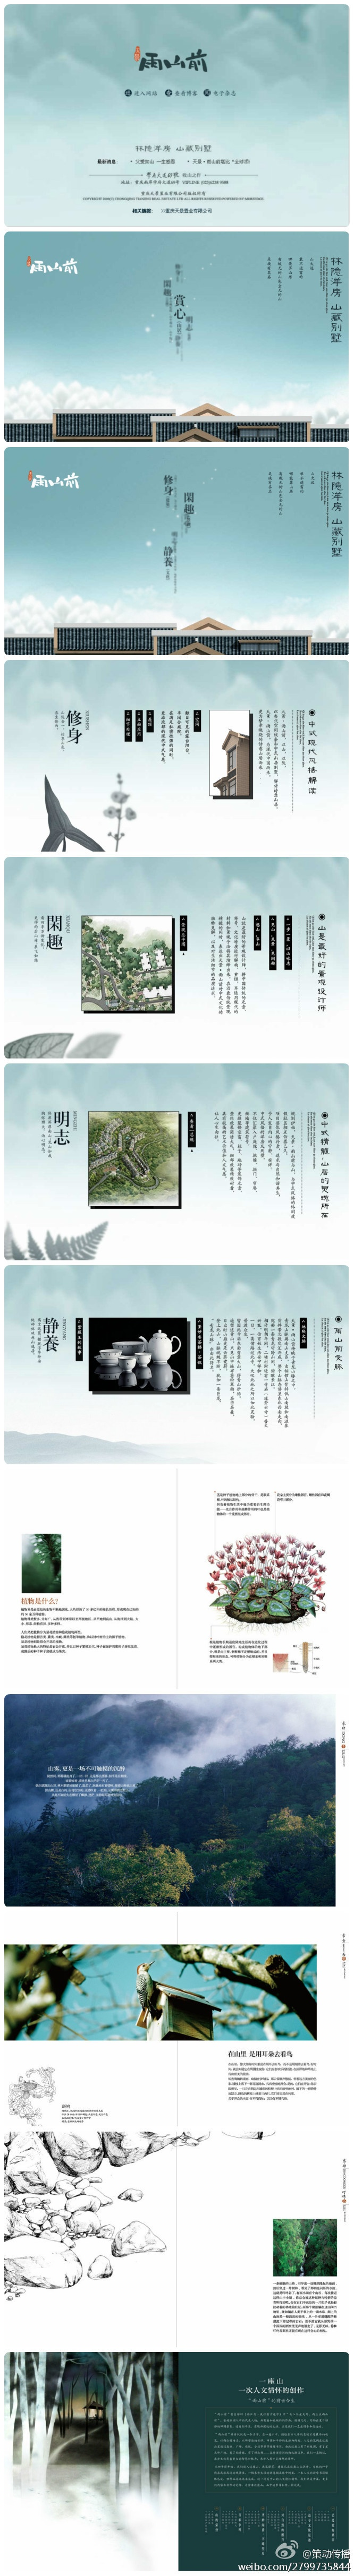 Beautiful Chinese graphic design & advertising http://www.weibo.com